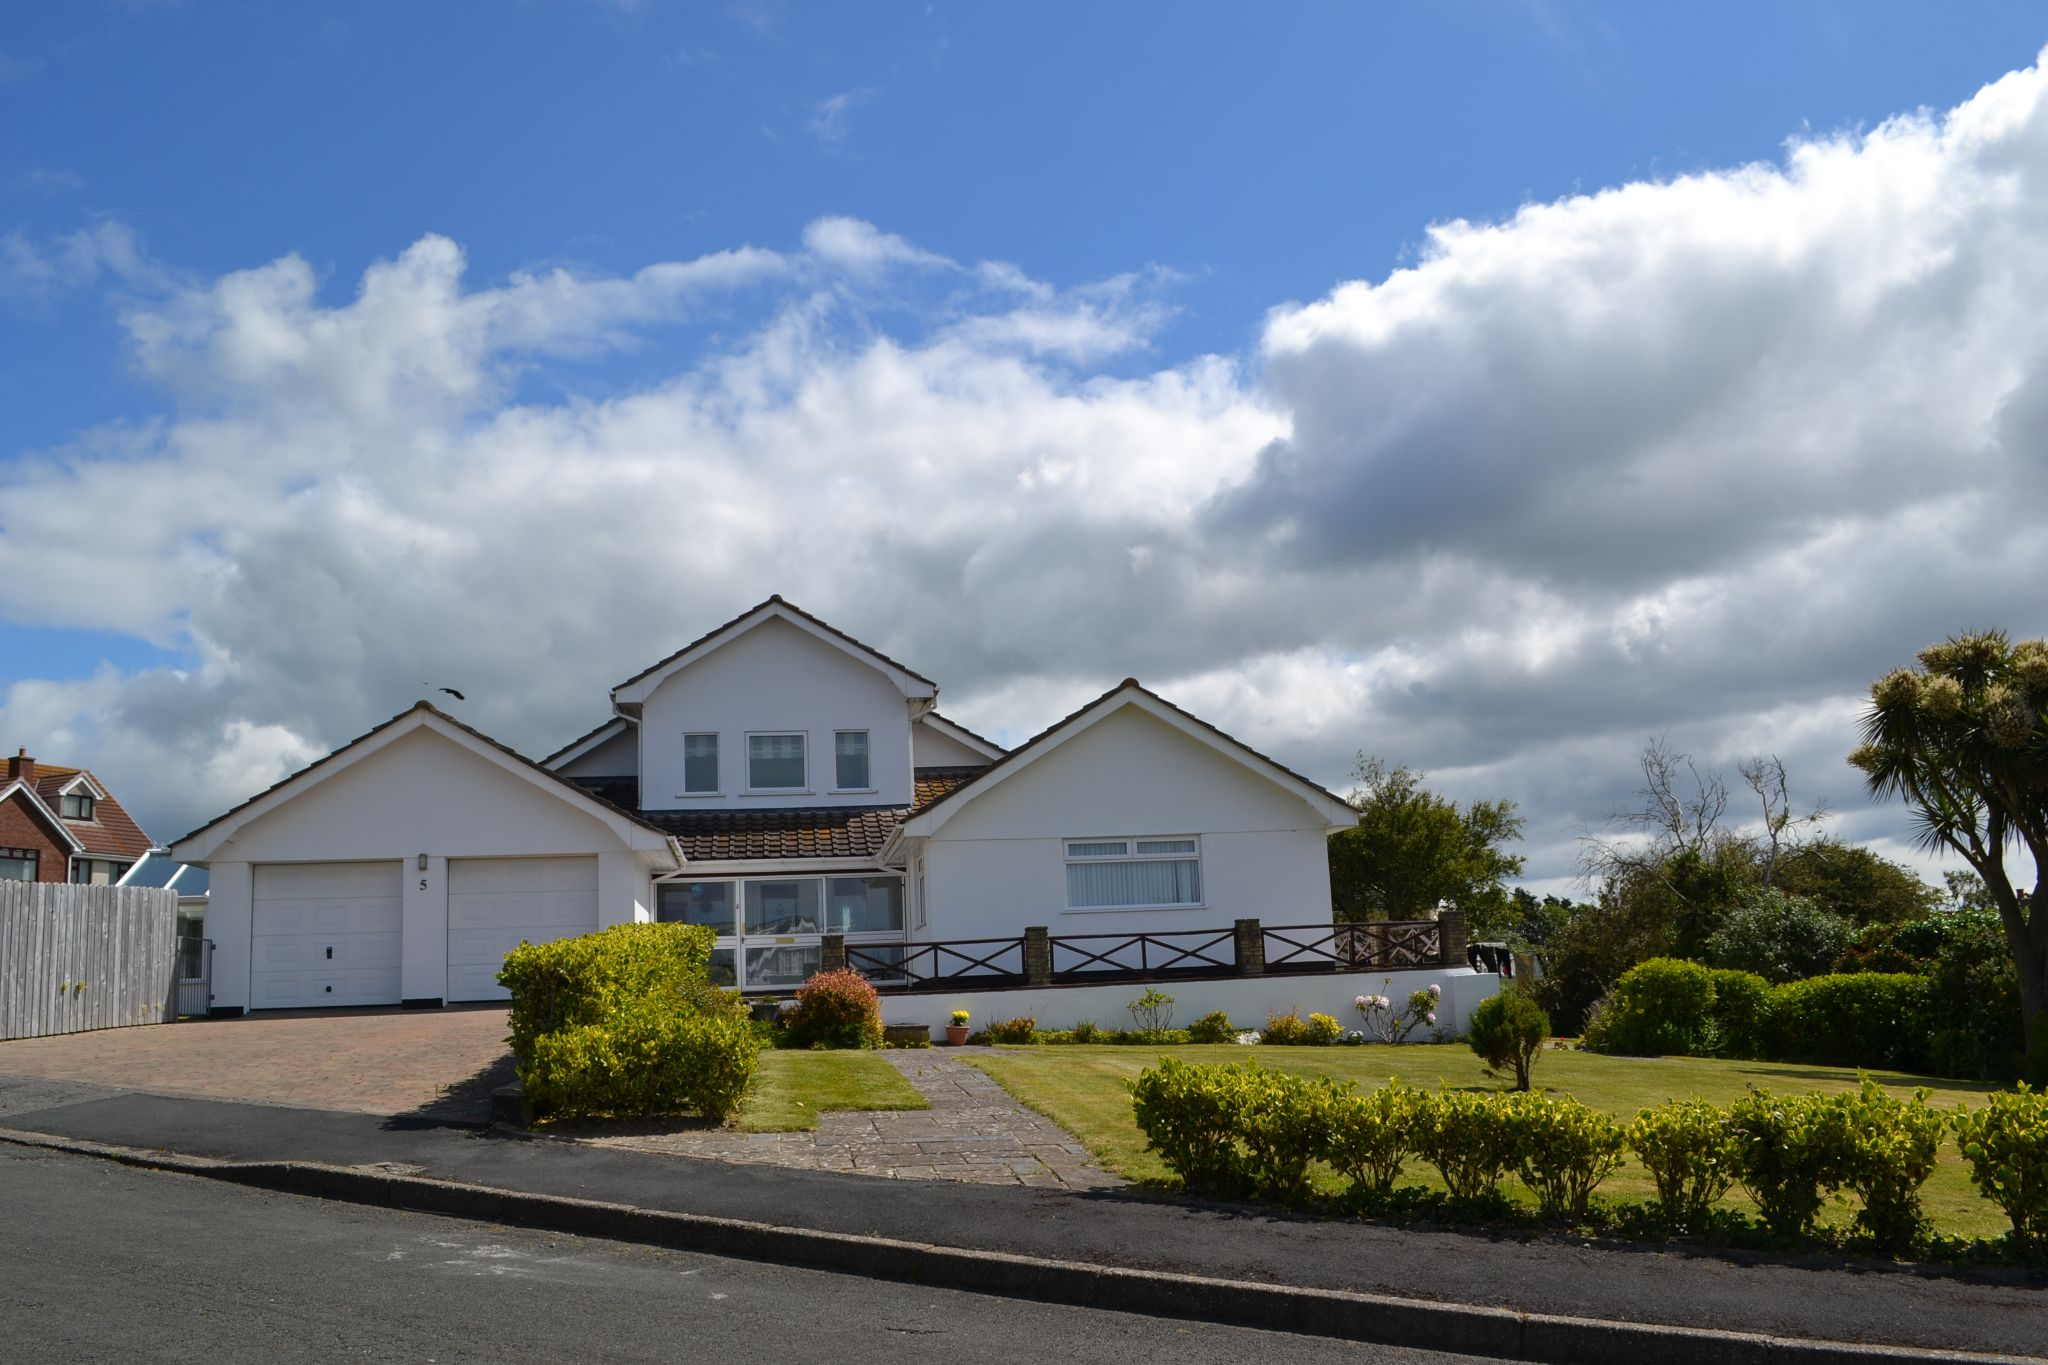 4 bedroom detached house For Sale in Colby - Photograph 2